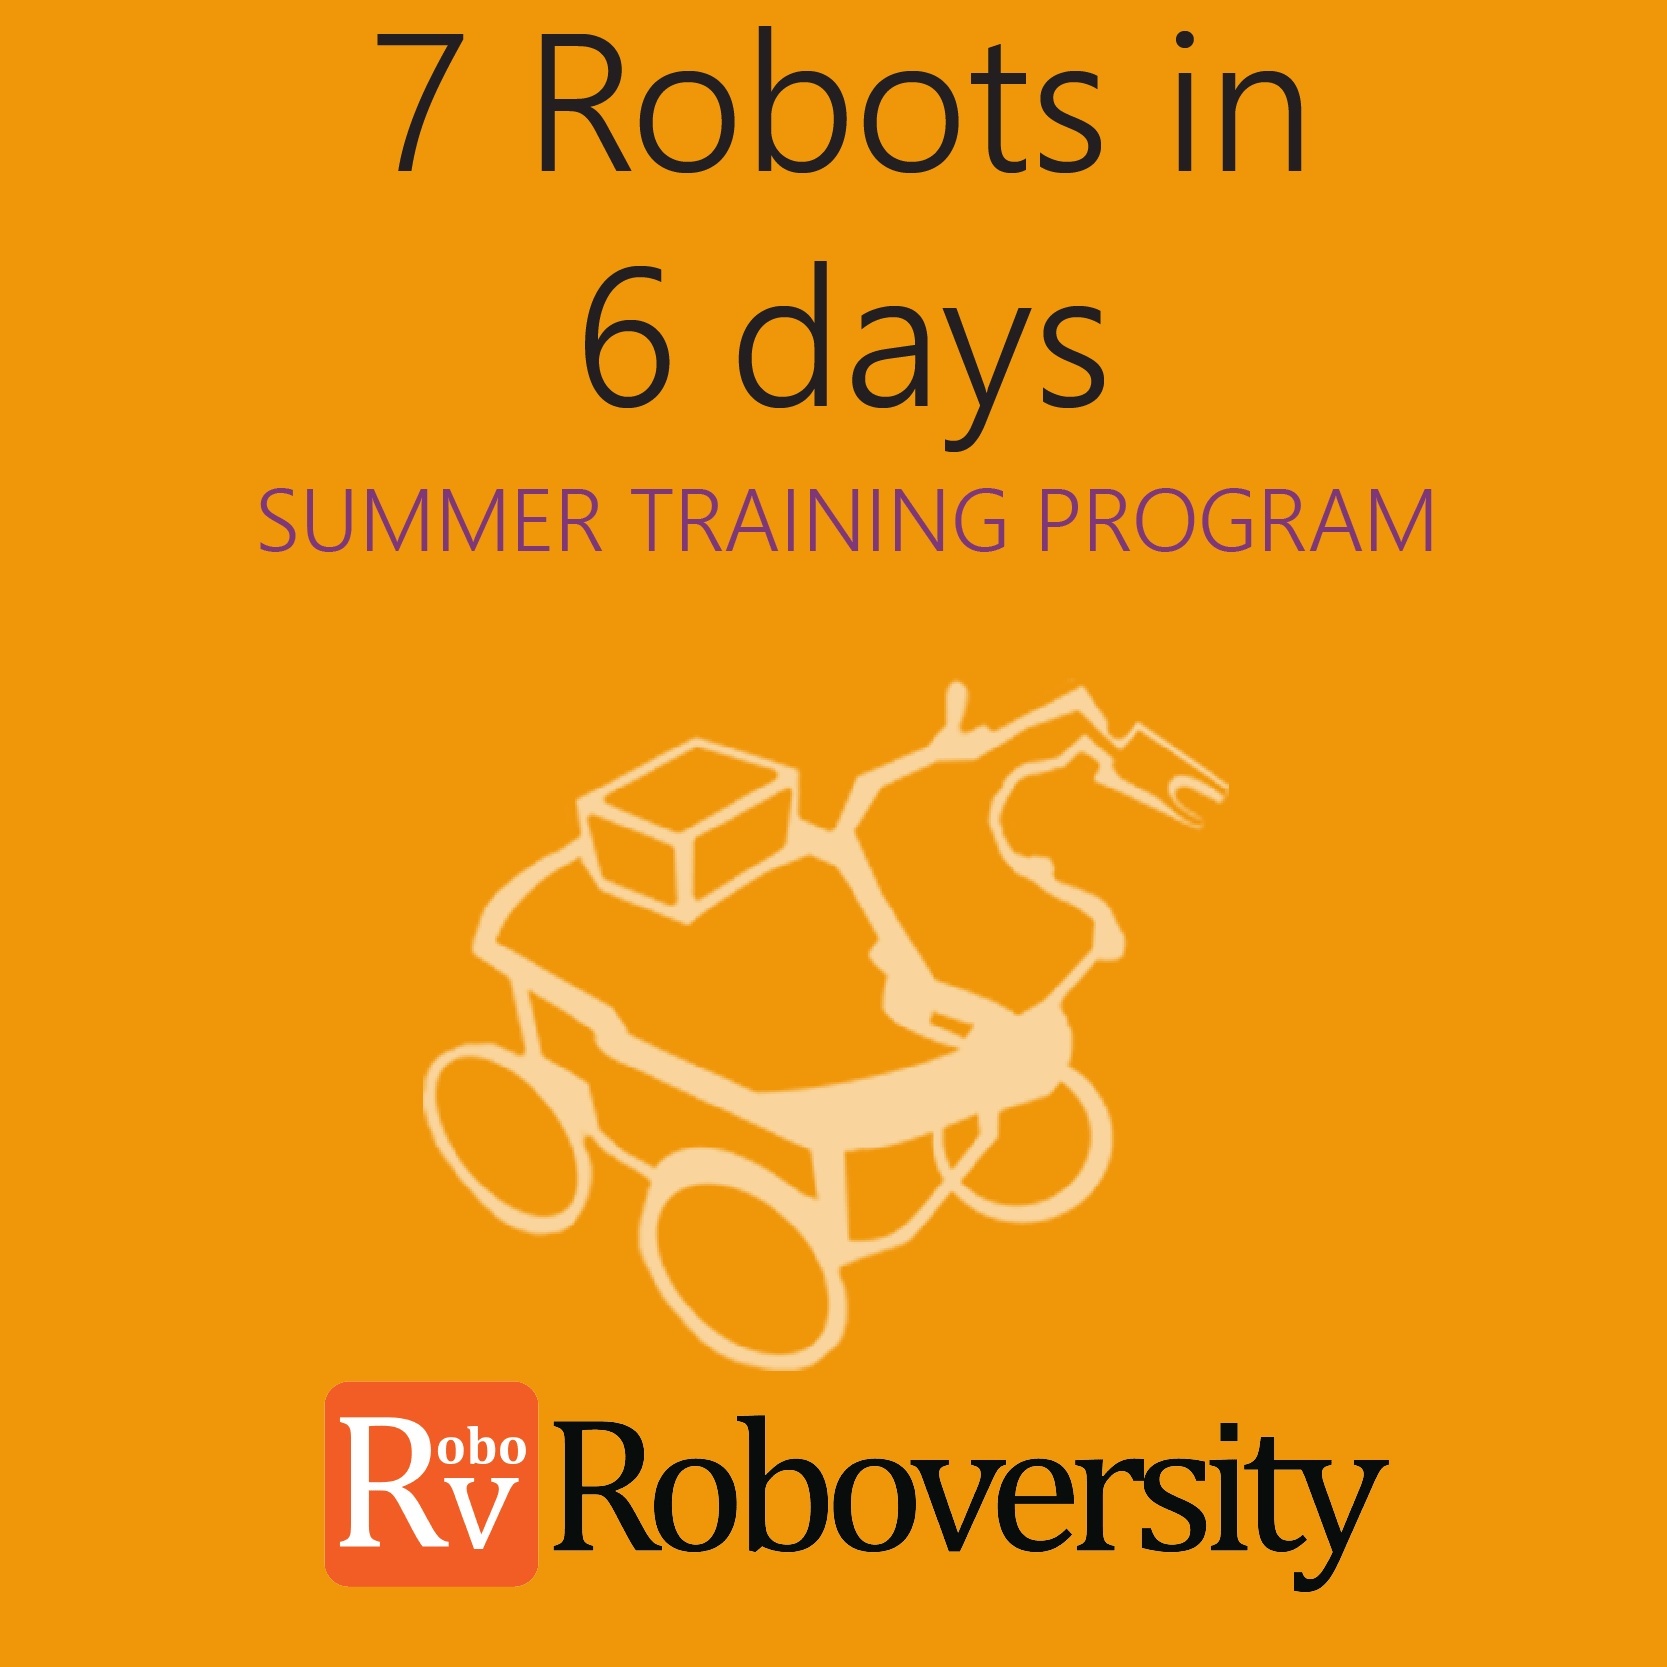 Summer Training Program on 7 Robots in 6 Days  at Skyfi Labs Center, Gate Forum, VIP Road Workshop